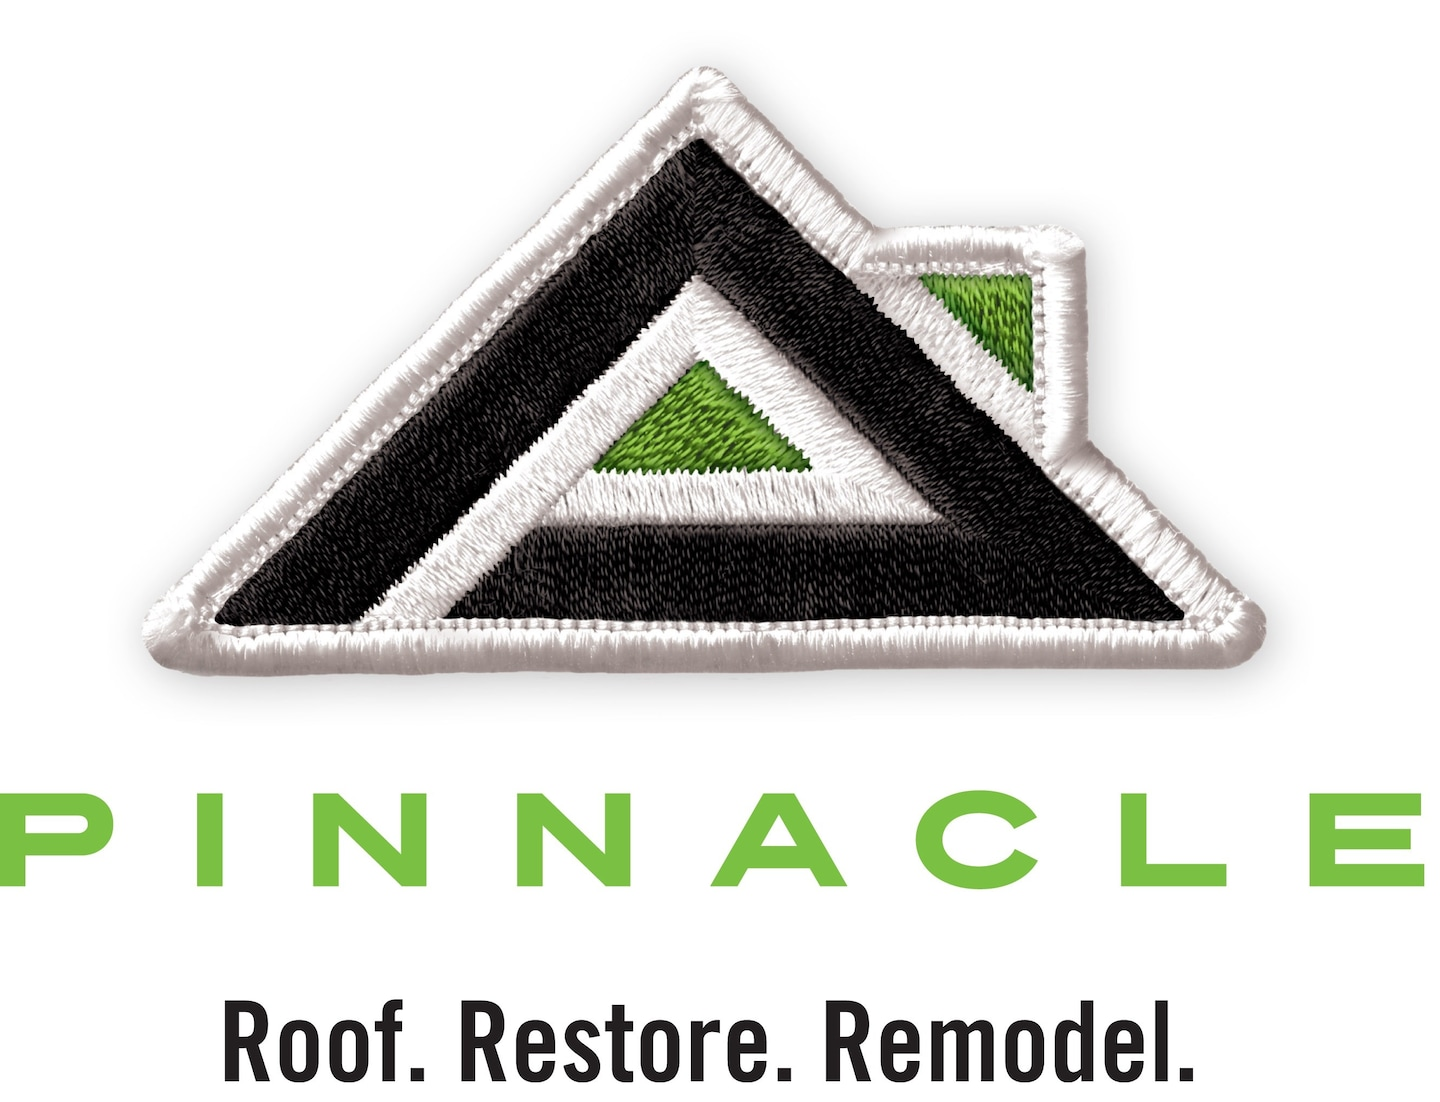 Pinnacle Contractors